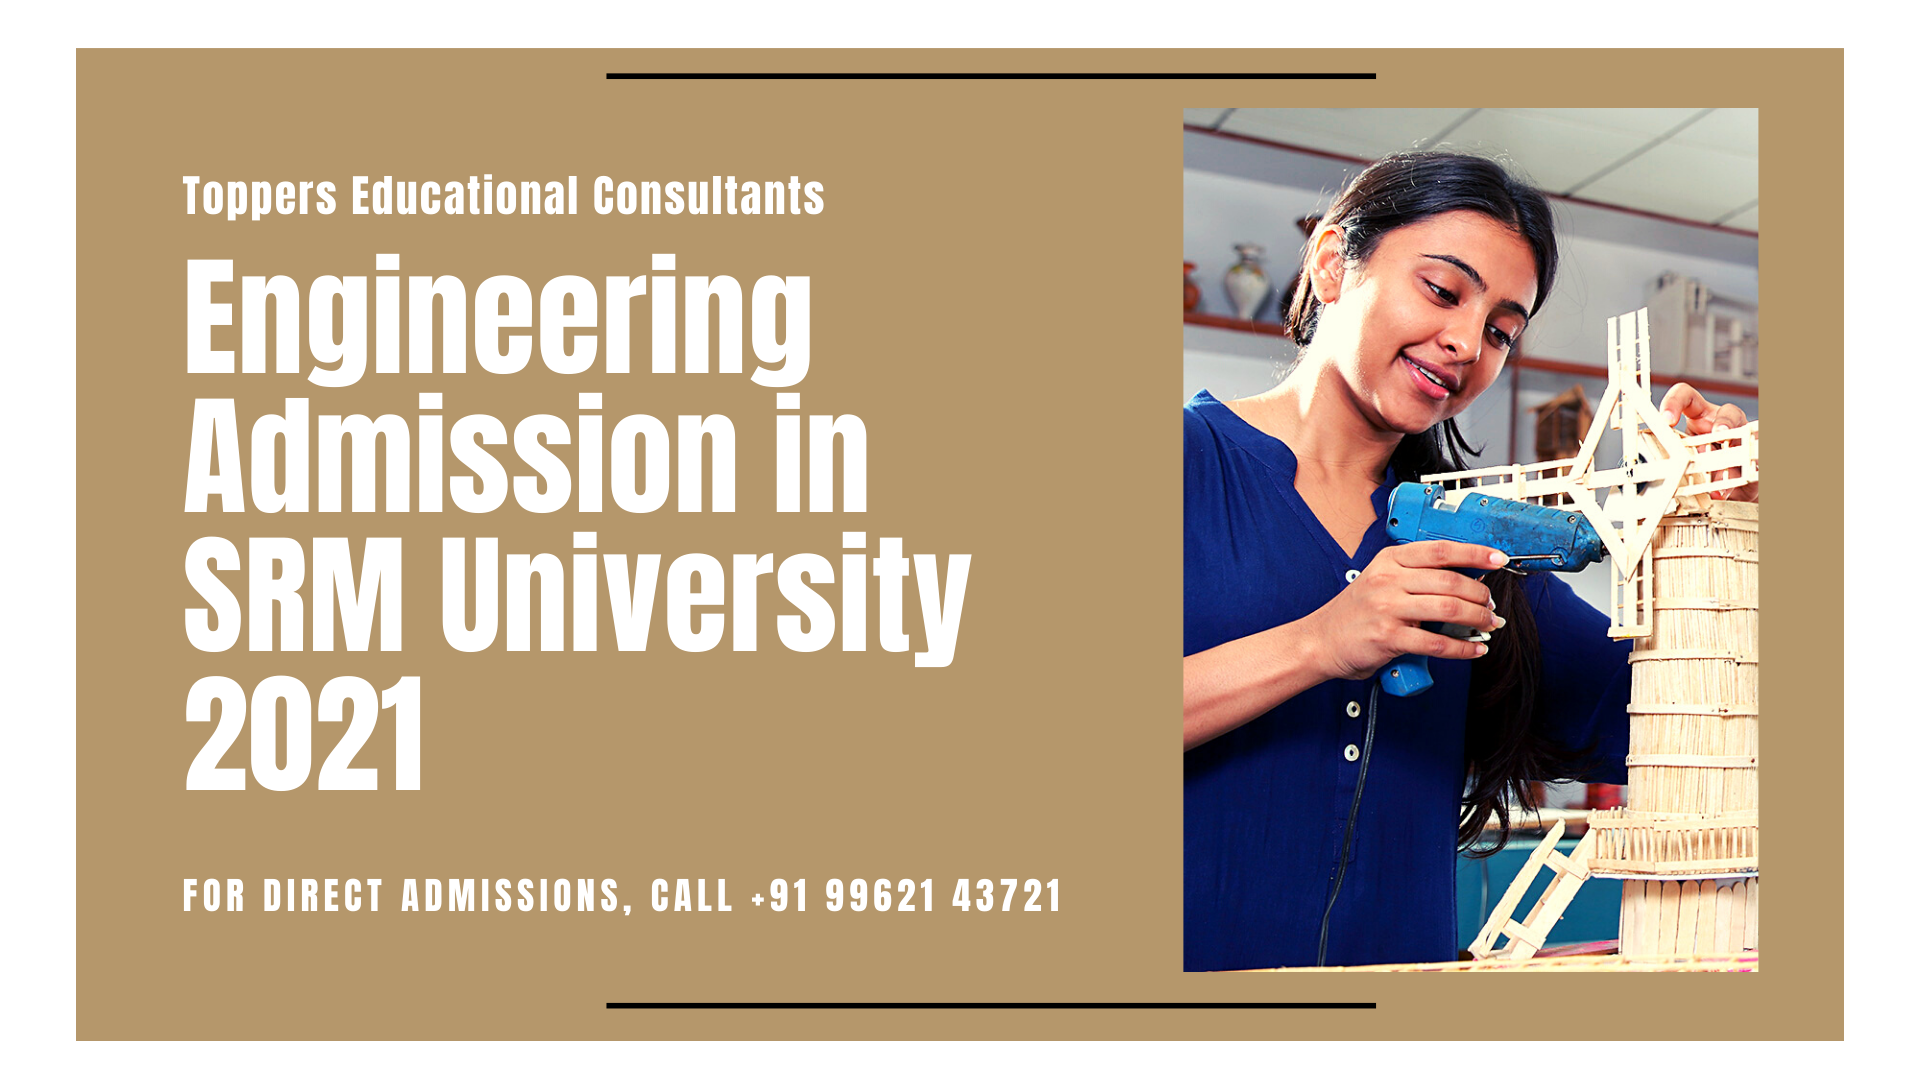 Engineering Admission in SRM University 2021